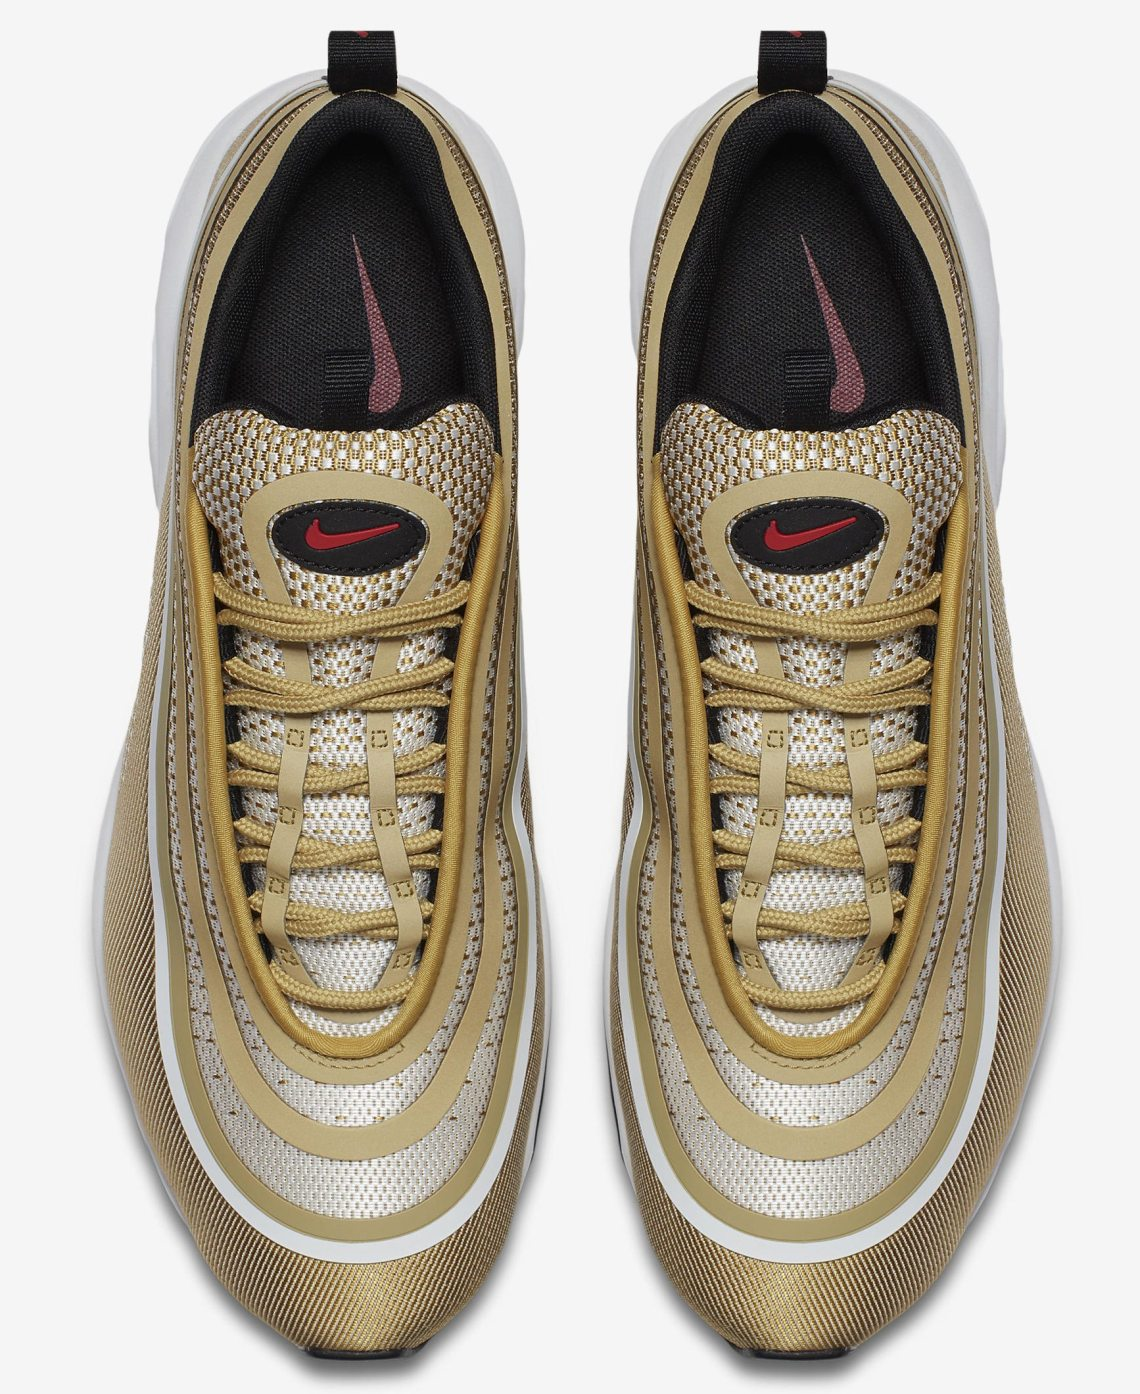 0e0c844c9d Air Max 97 Gold. nike air max 97 og gold aj8056 700 the sole ...